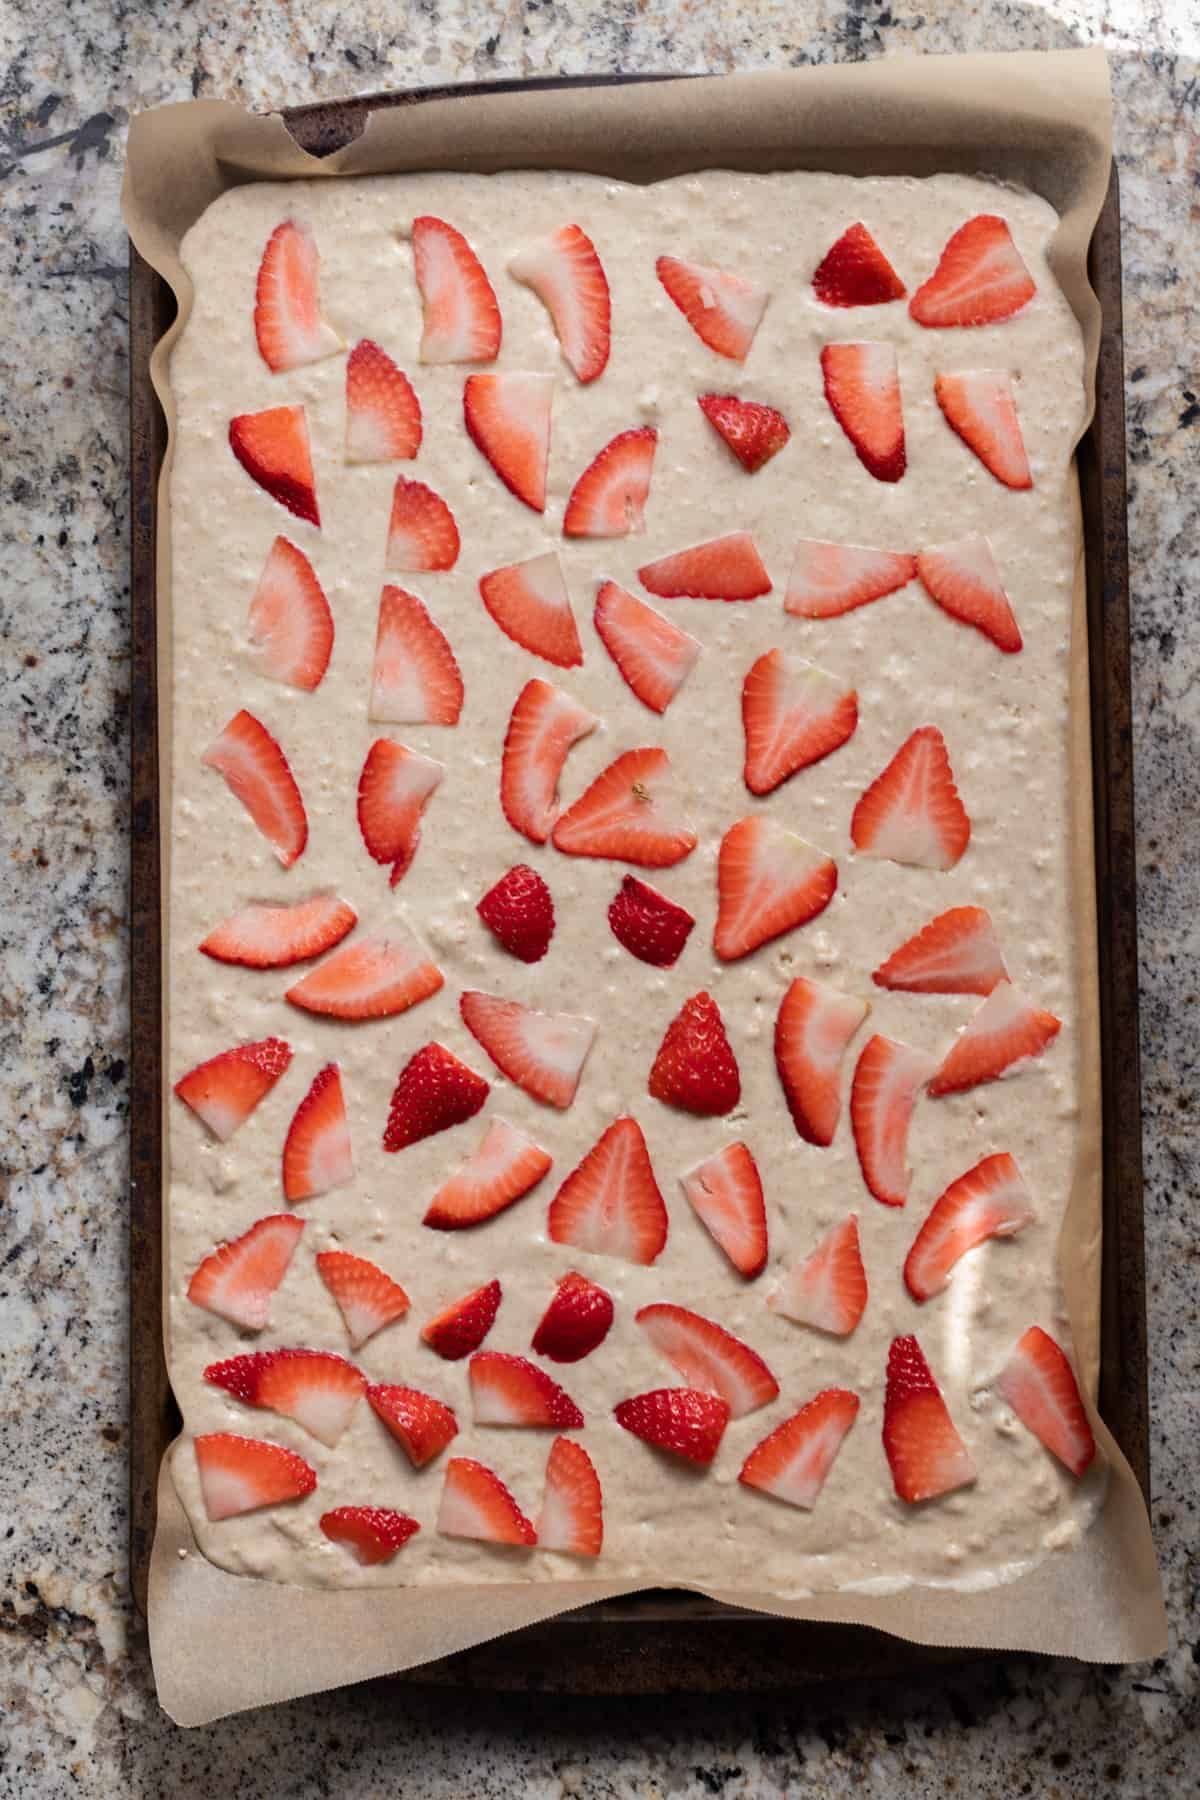 Pancake batter spread in sheet pan topped with sliced strawberries.